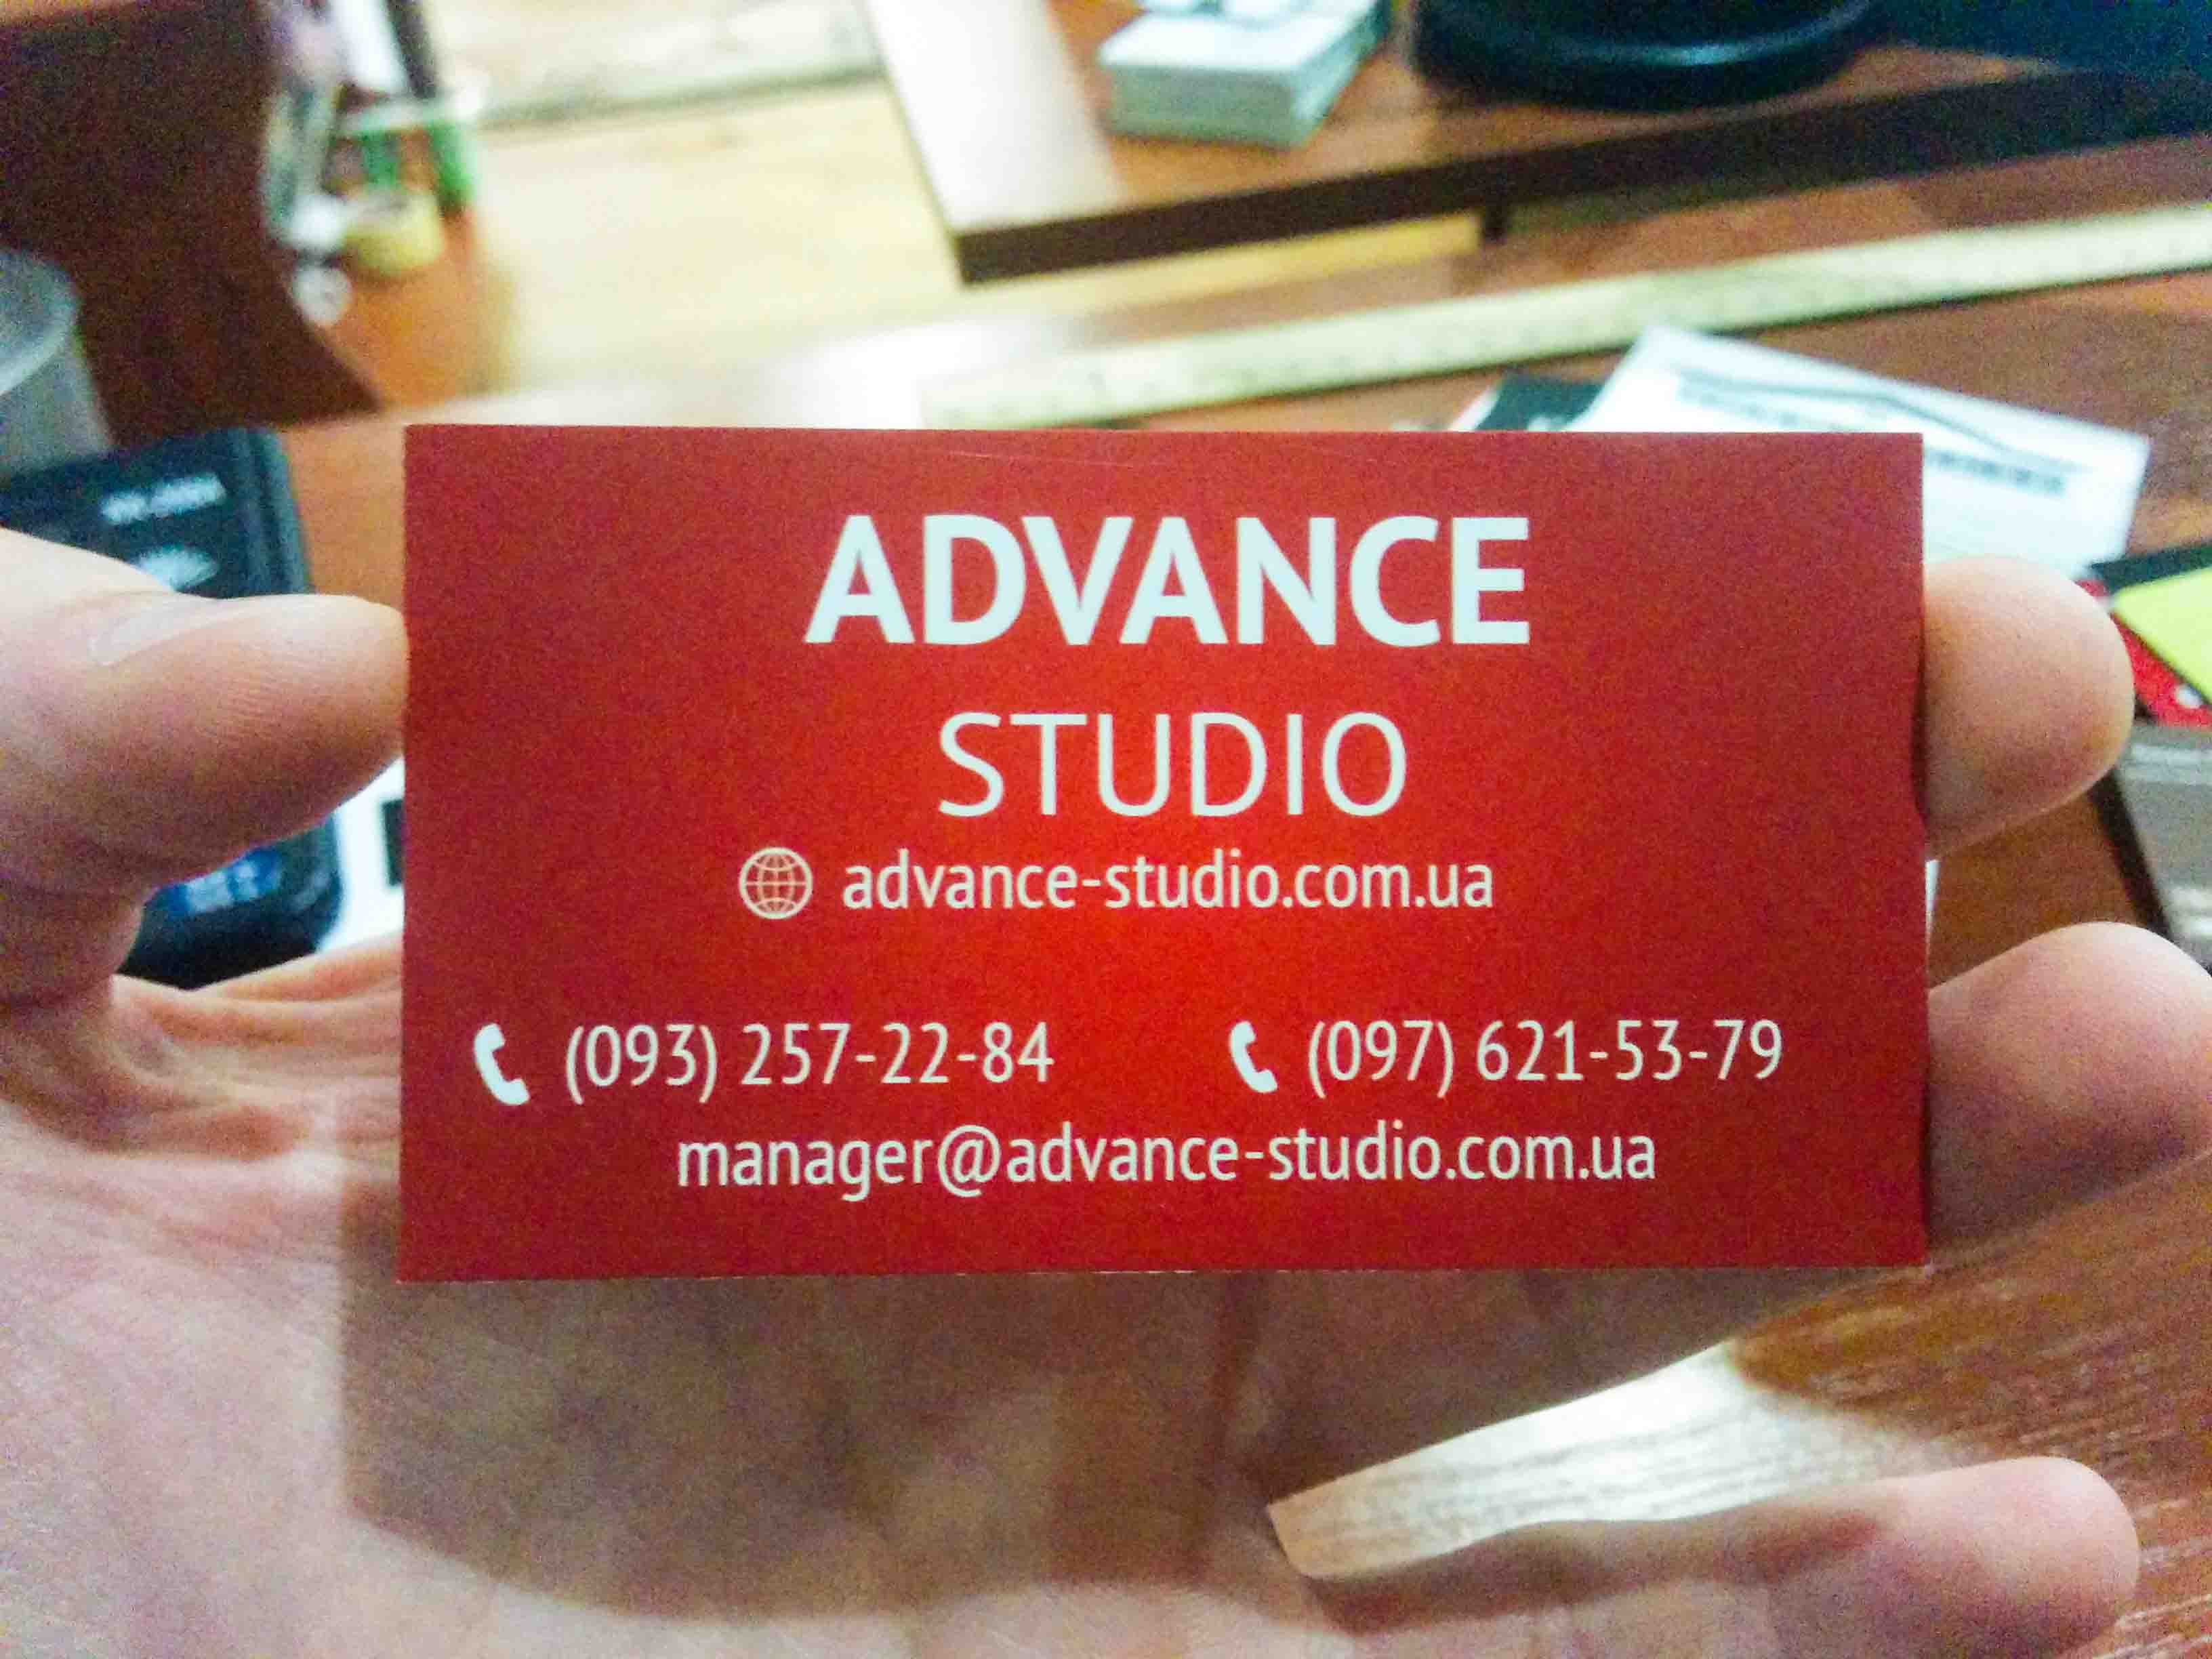 Advance Studio